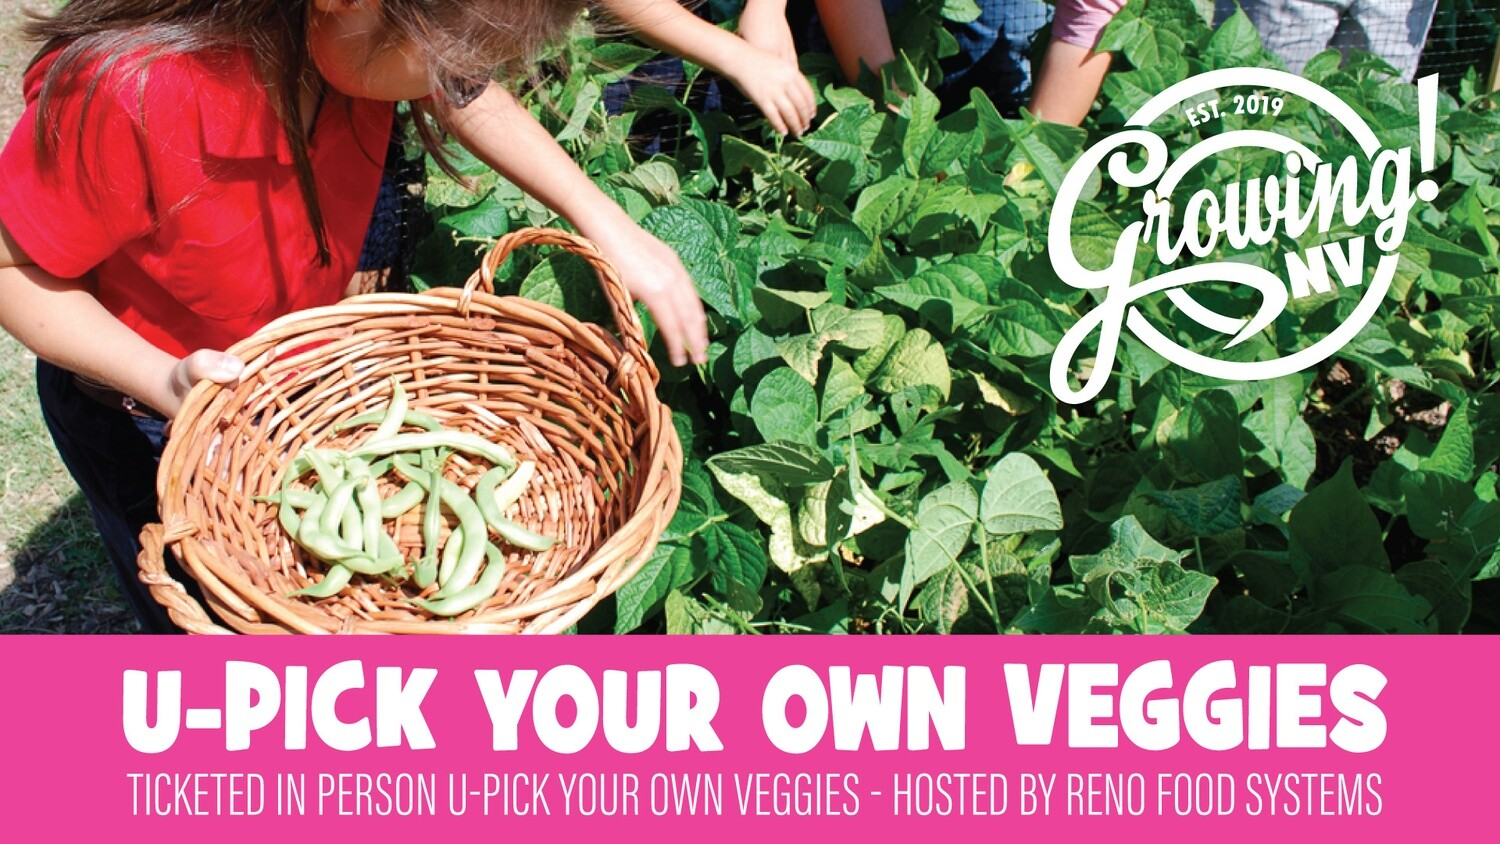 SOLD OUT! 4-6pm U-Pick Event - GrowingNV Showcases Reno Food Systems' Park Farm